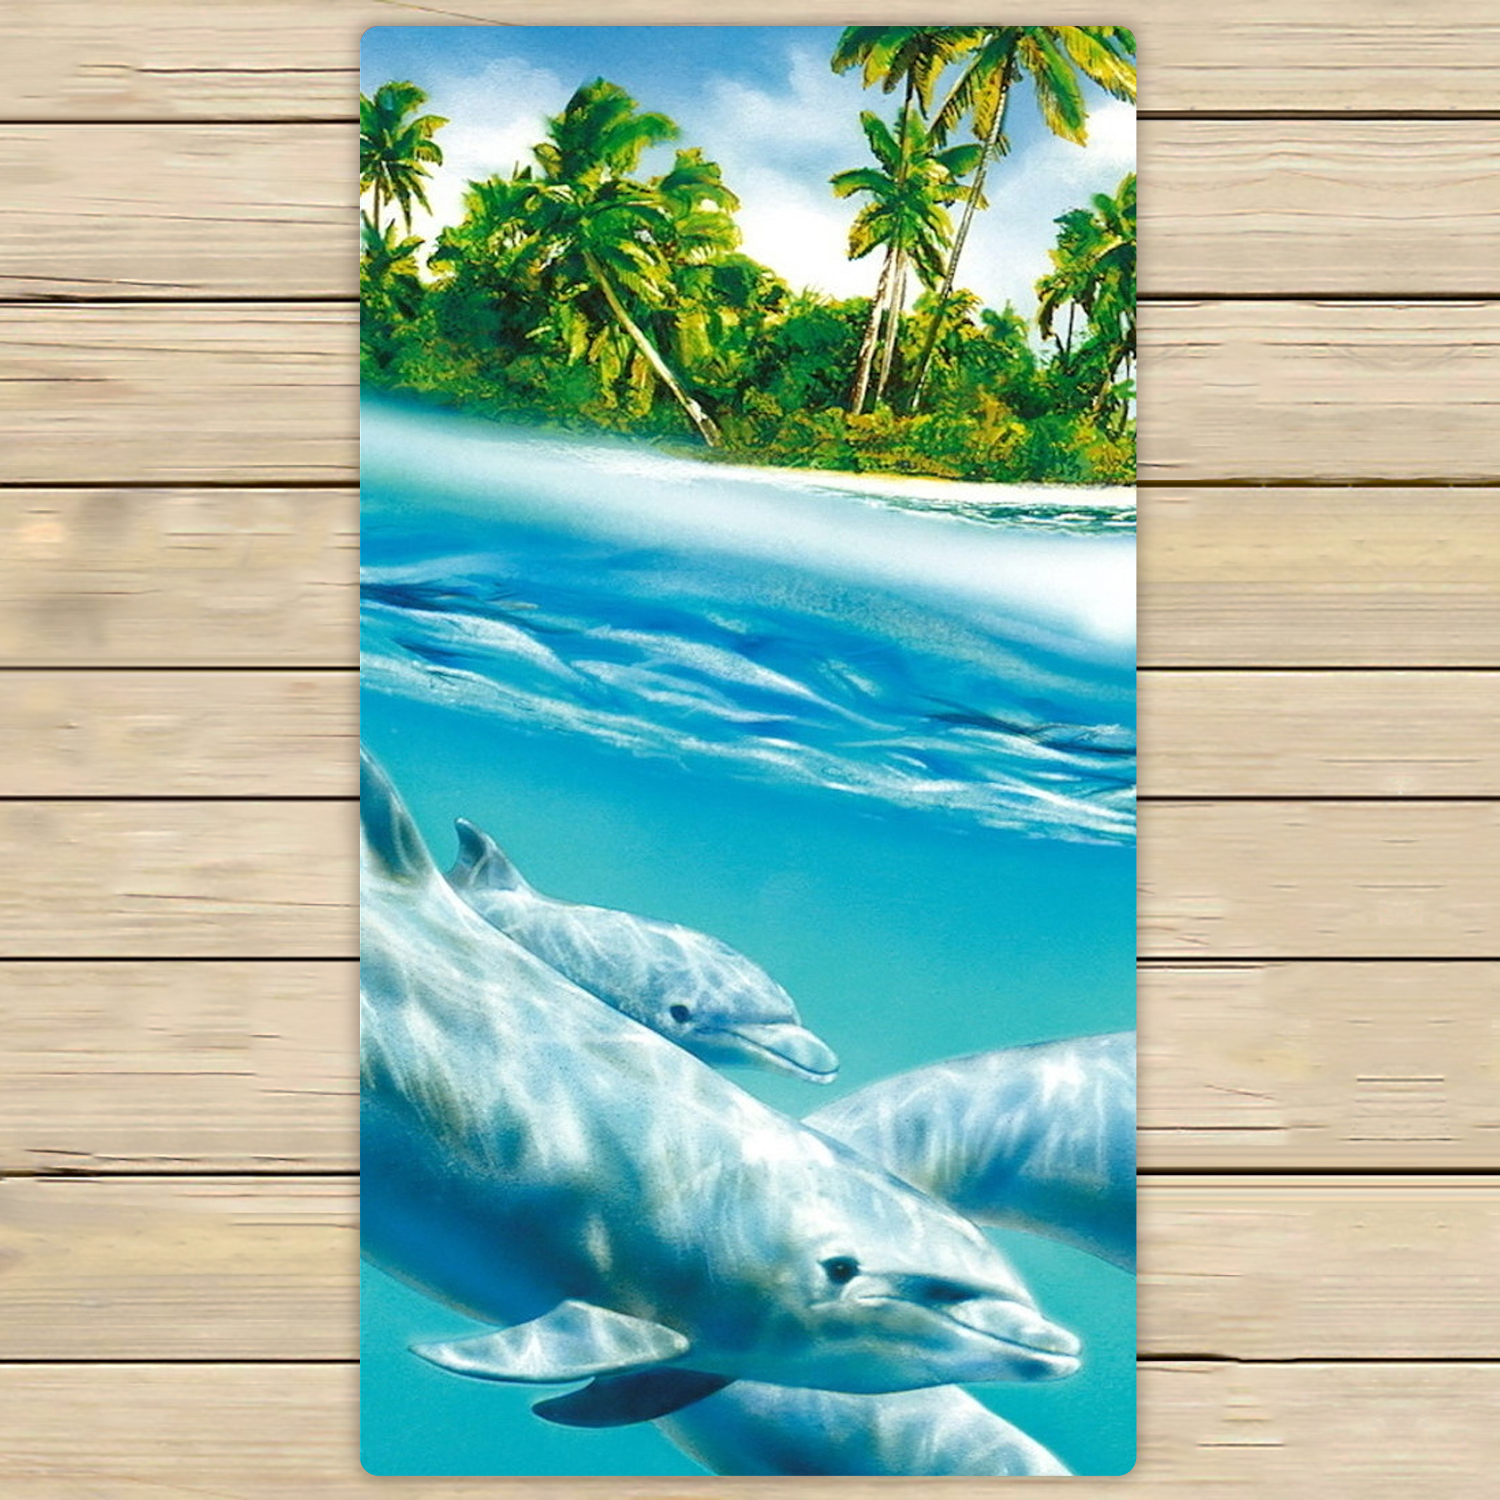 YKCG Underwater Dolphins Family Funny Sea Animals Hand Towel Beach Towels Bath Shower Towel Bath Wrap For Home Outdoor Travel Use 30x56 inches